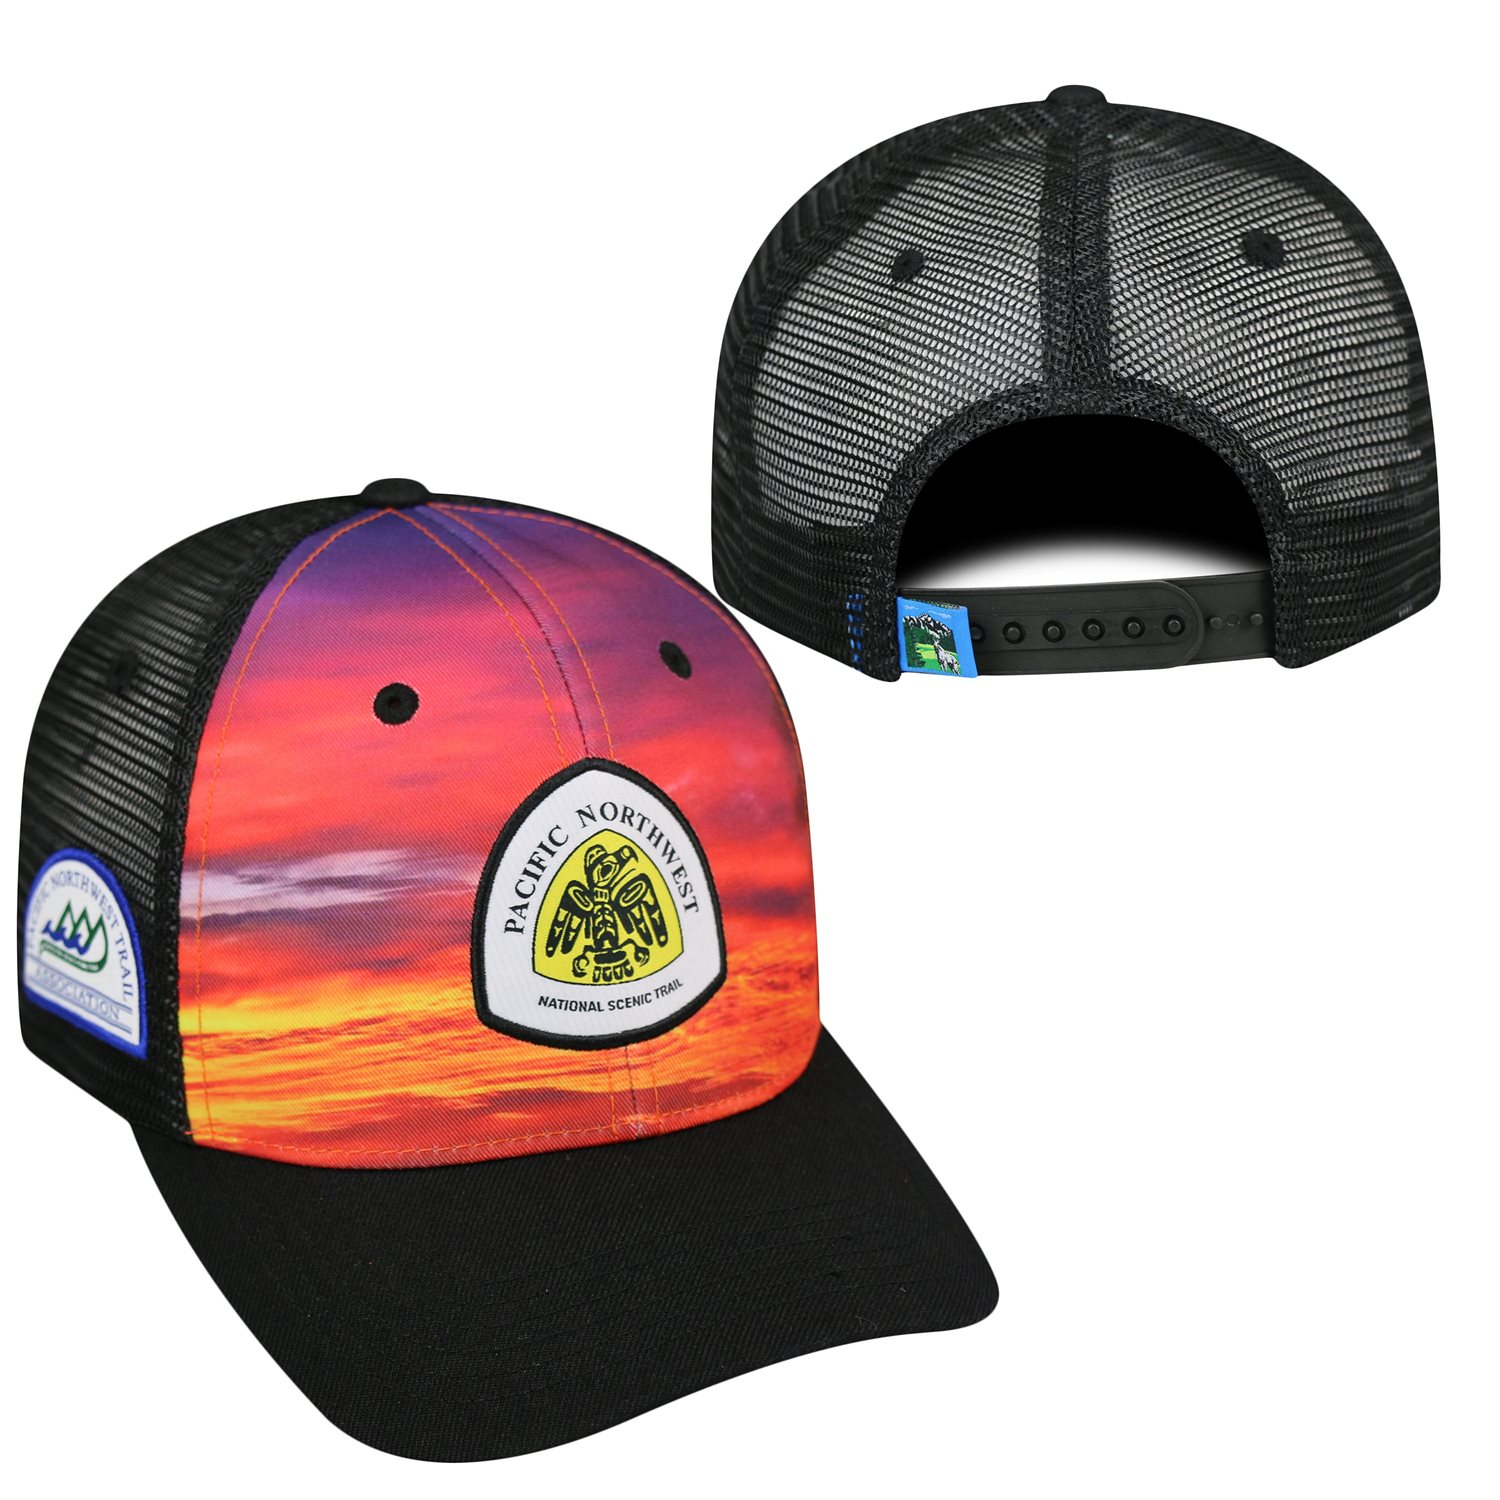 Stay Visible with this Awesome Pacific Northwest Trail Skyline Hat 12e55bf02a1